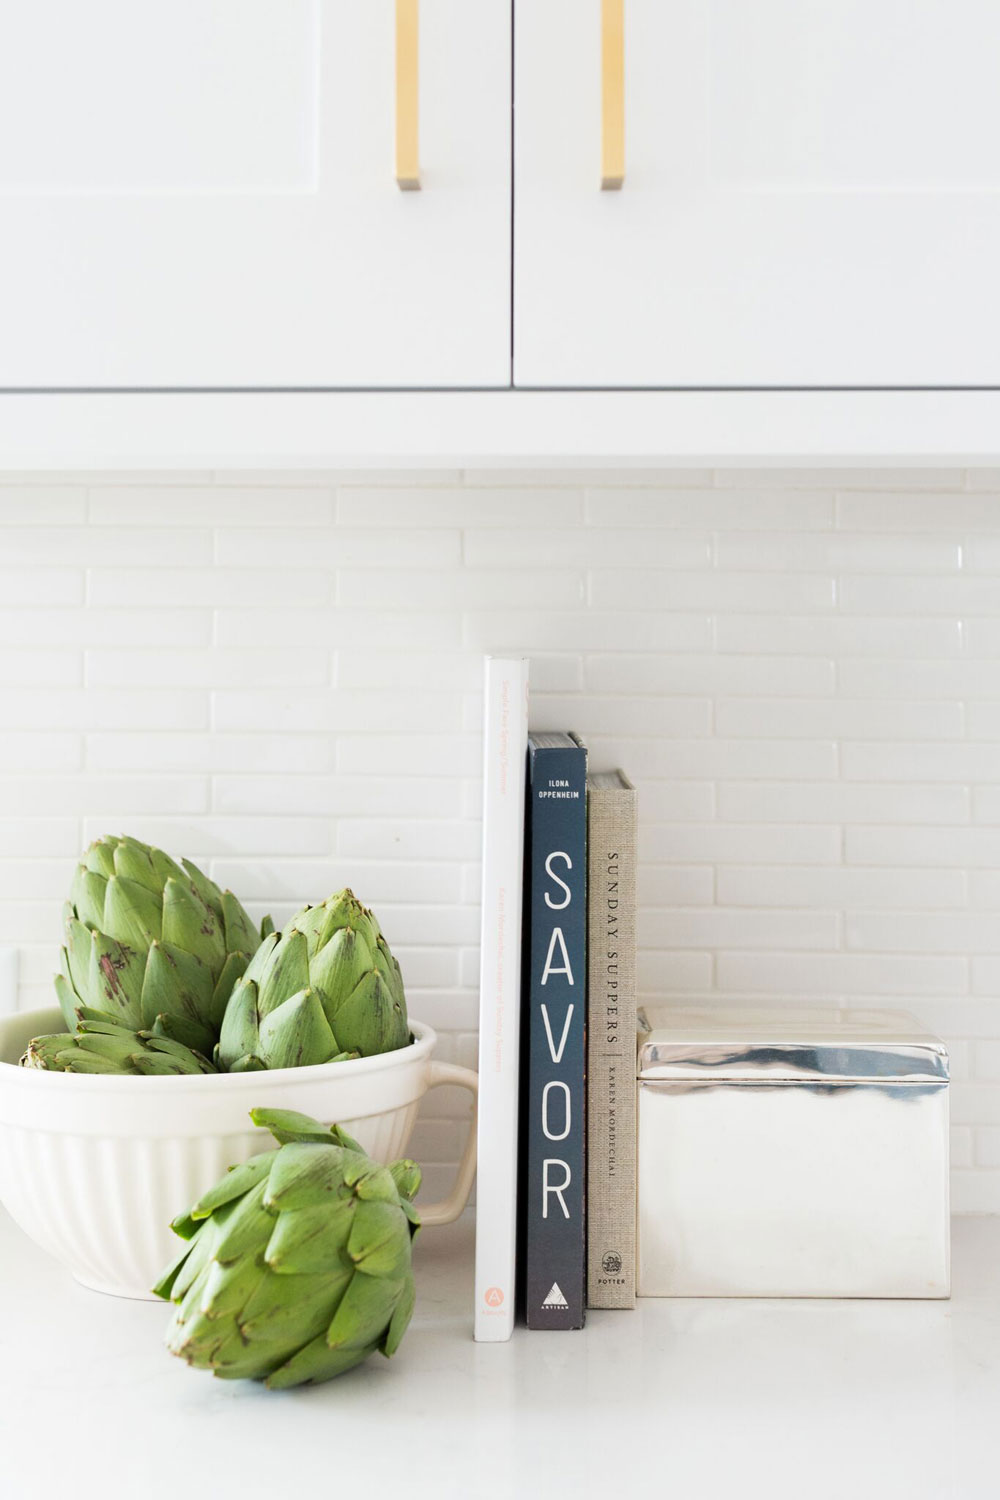 My future kitchen renovation ideas are over on the blog, including white shaker style cabinets and glass open shelving.